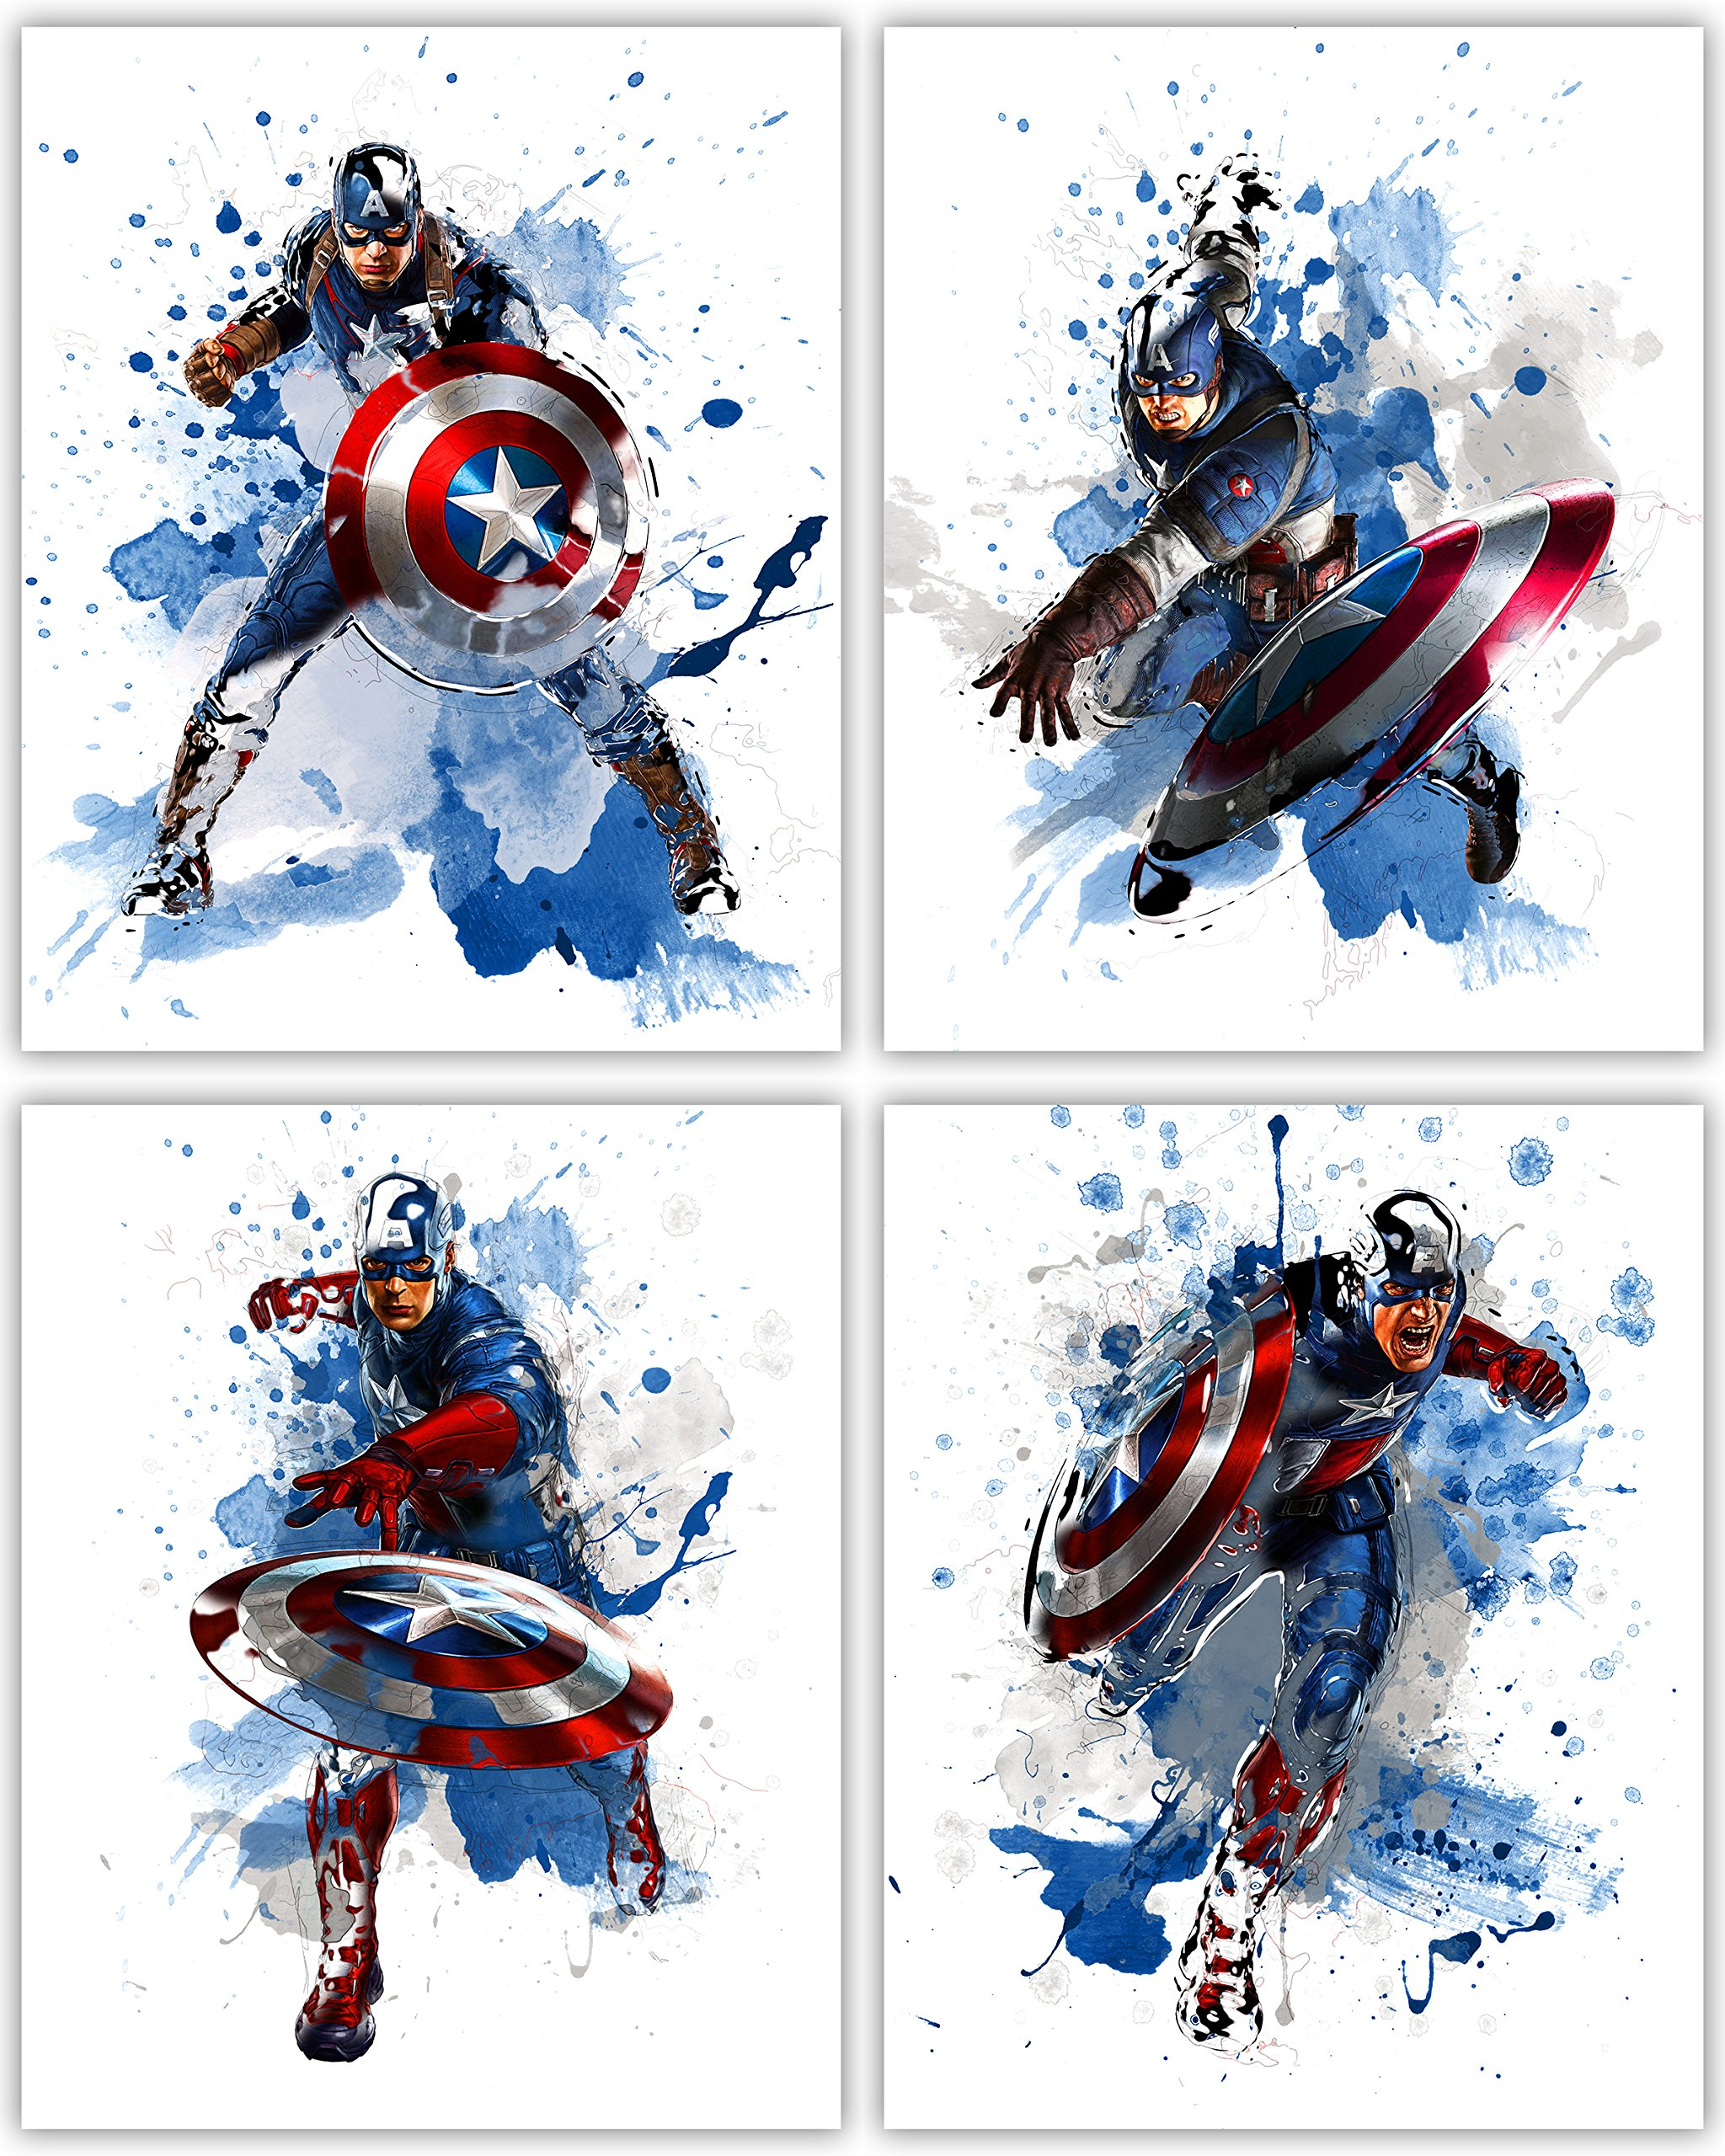 Captain America Wall Decor Collection - The First Avenger in our Wall Art Movie Poster Print Series - Set of 4 8x10 Photos by Tangible Prints